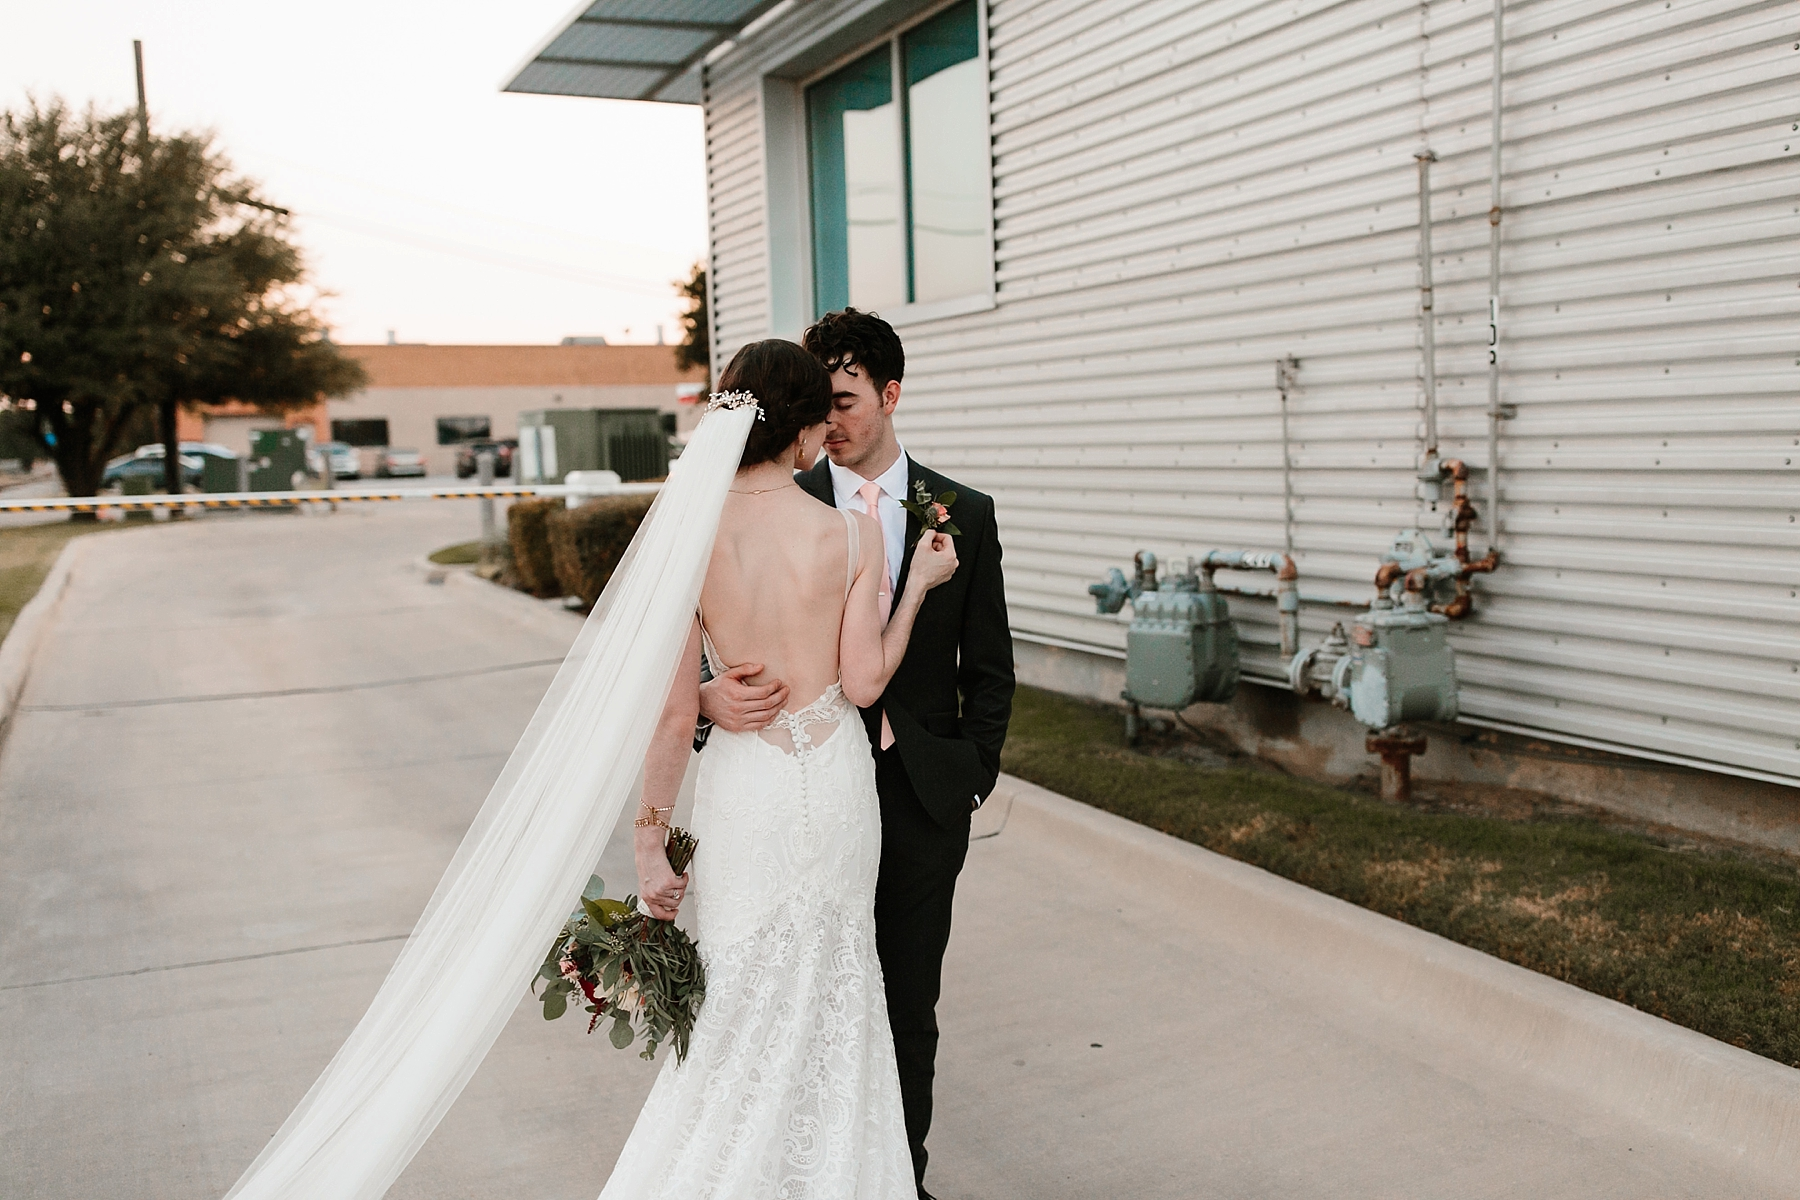 Emily + Caleb _ an elegant, intentional, industrial style wedding with navy + gold accents at 6500 in Dallas, TX by North Texas Wedding Photographer Rachel Meagan Photography _ 124